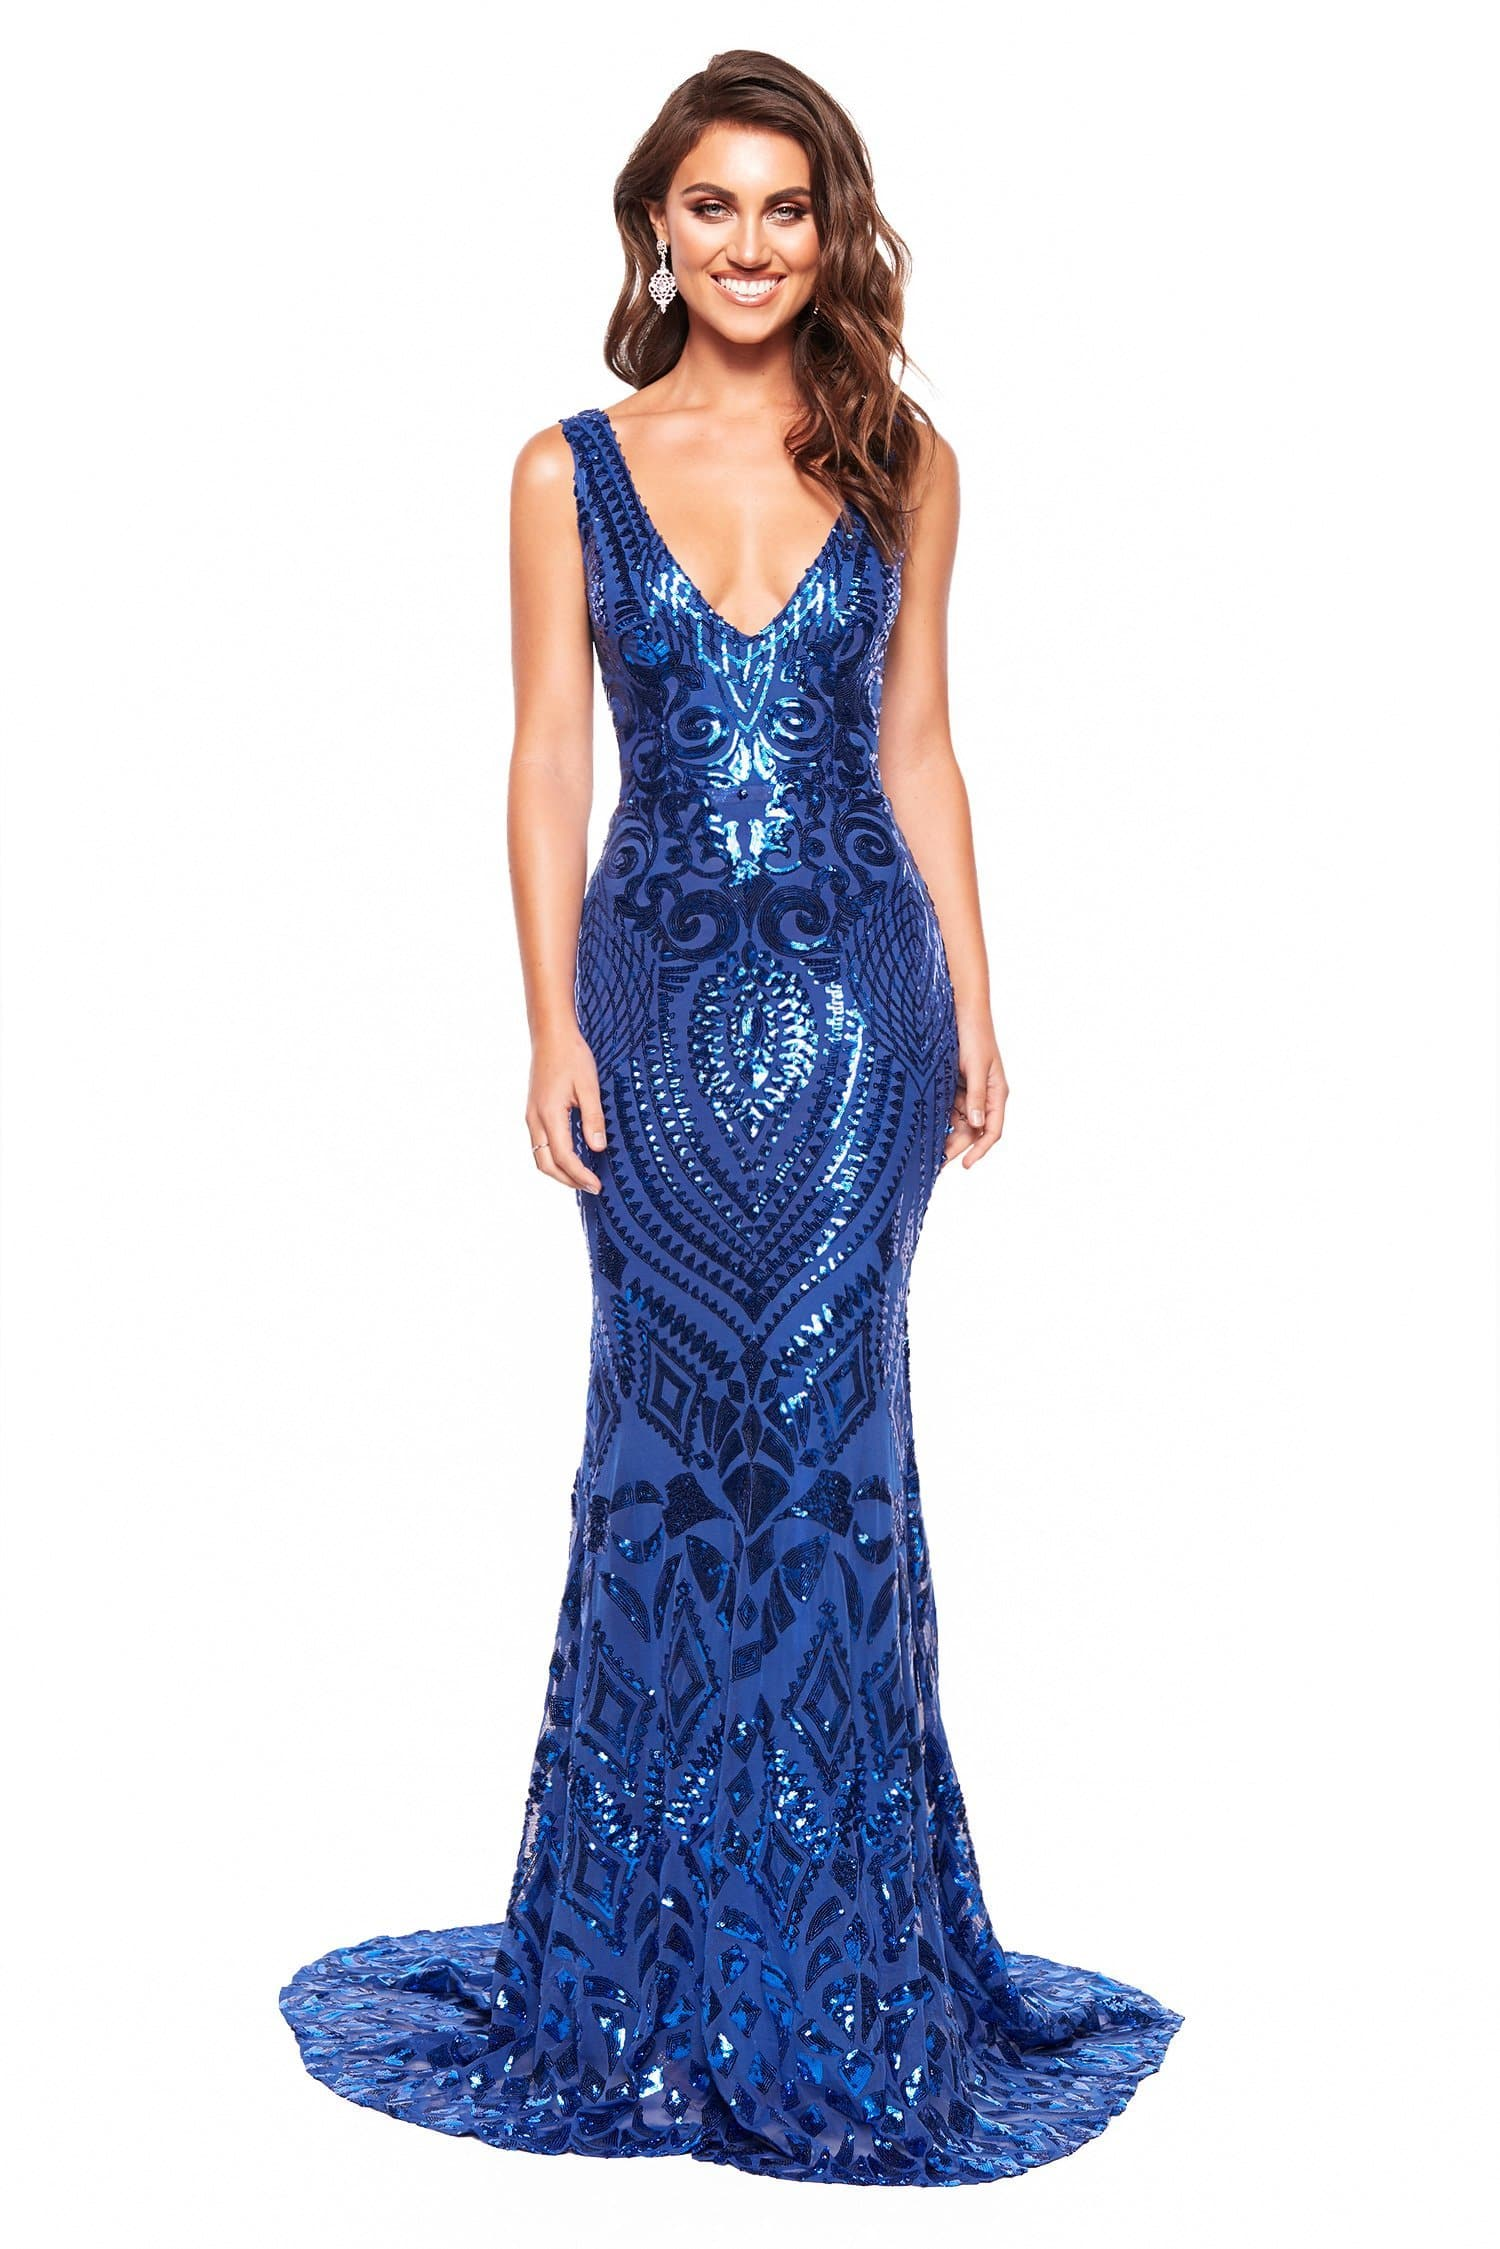 A&N Luxe Crown - Royal Blue Sequin Gown with Plunge Neck & Back